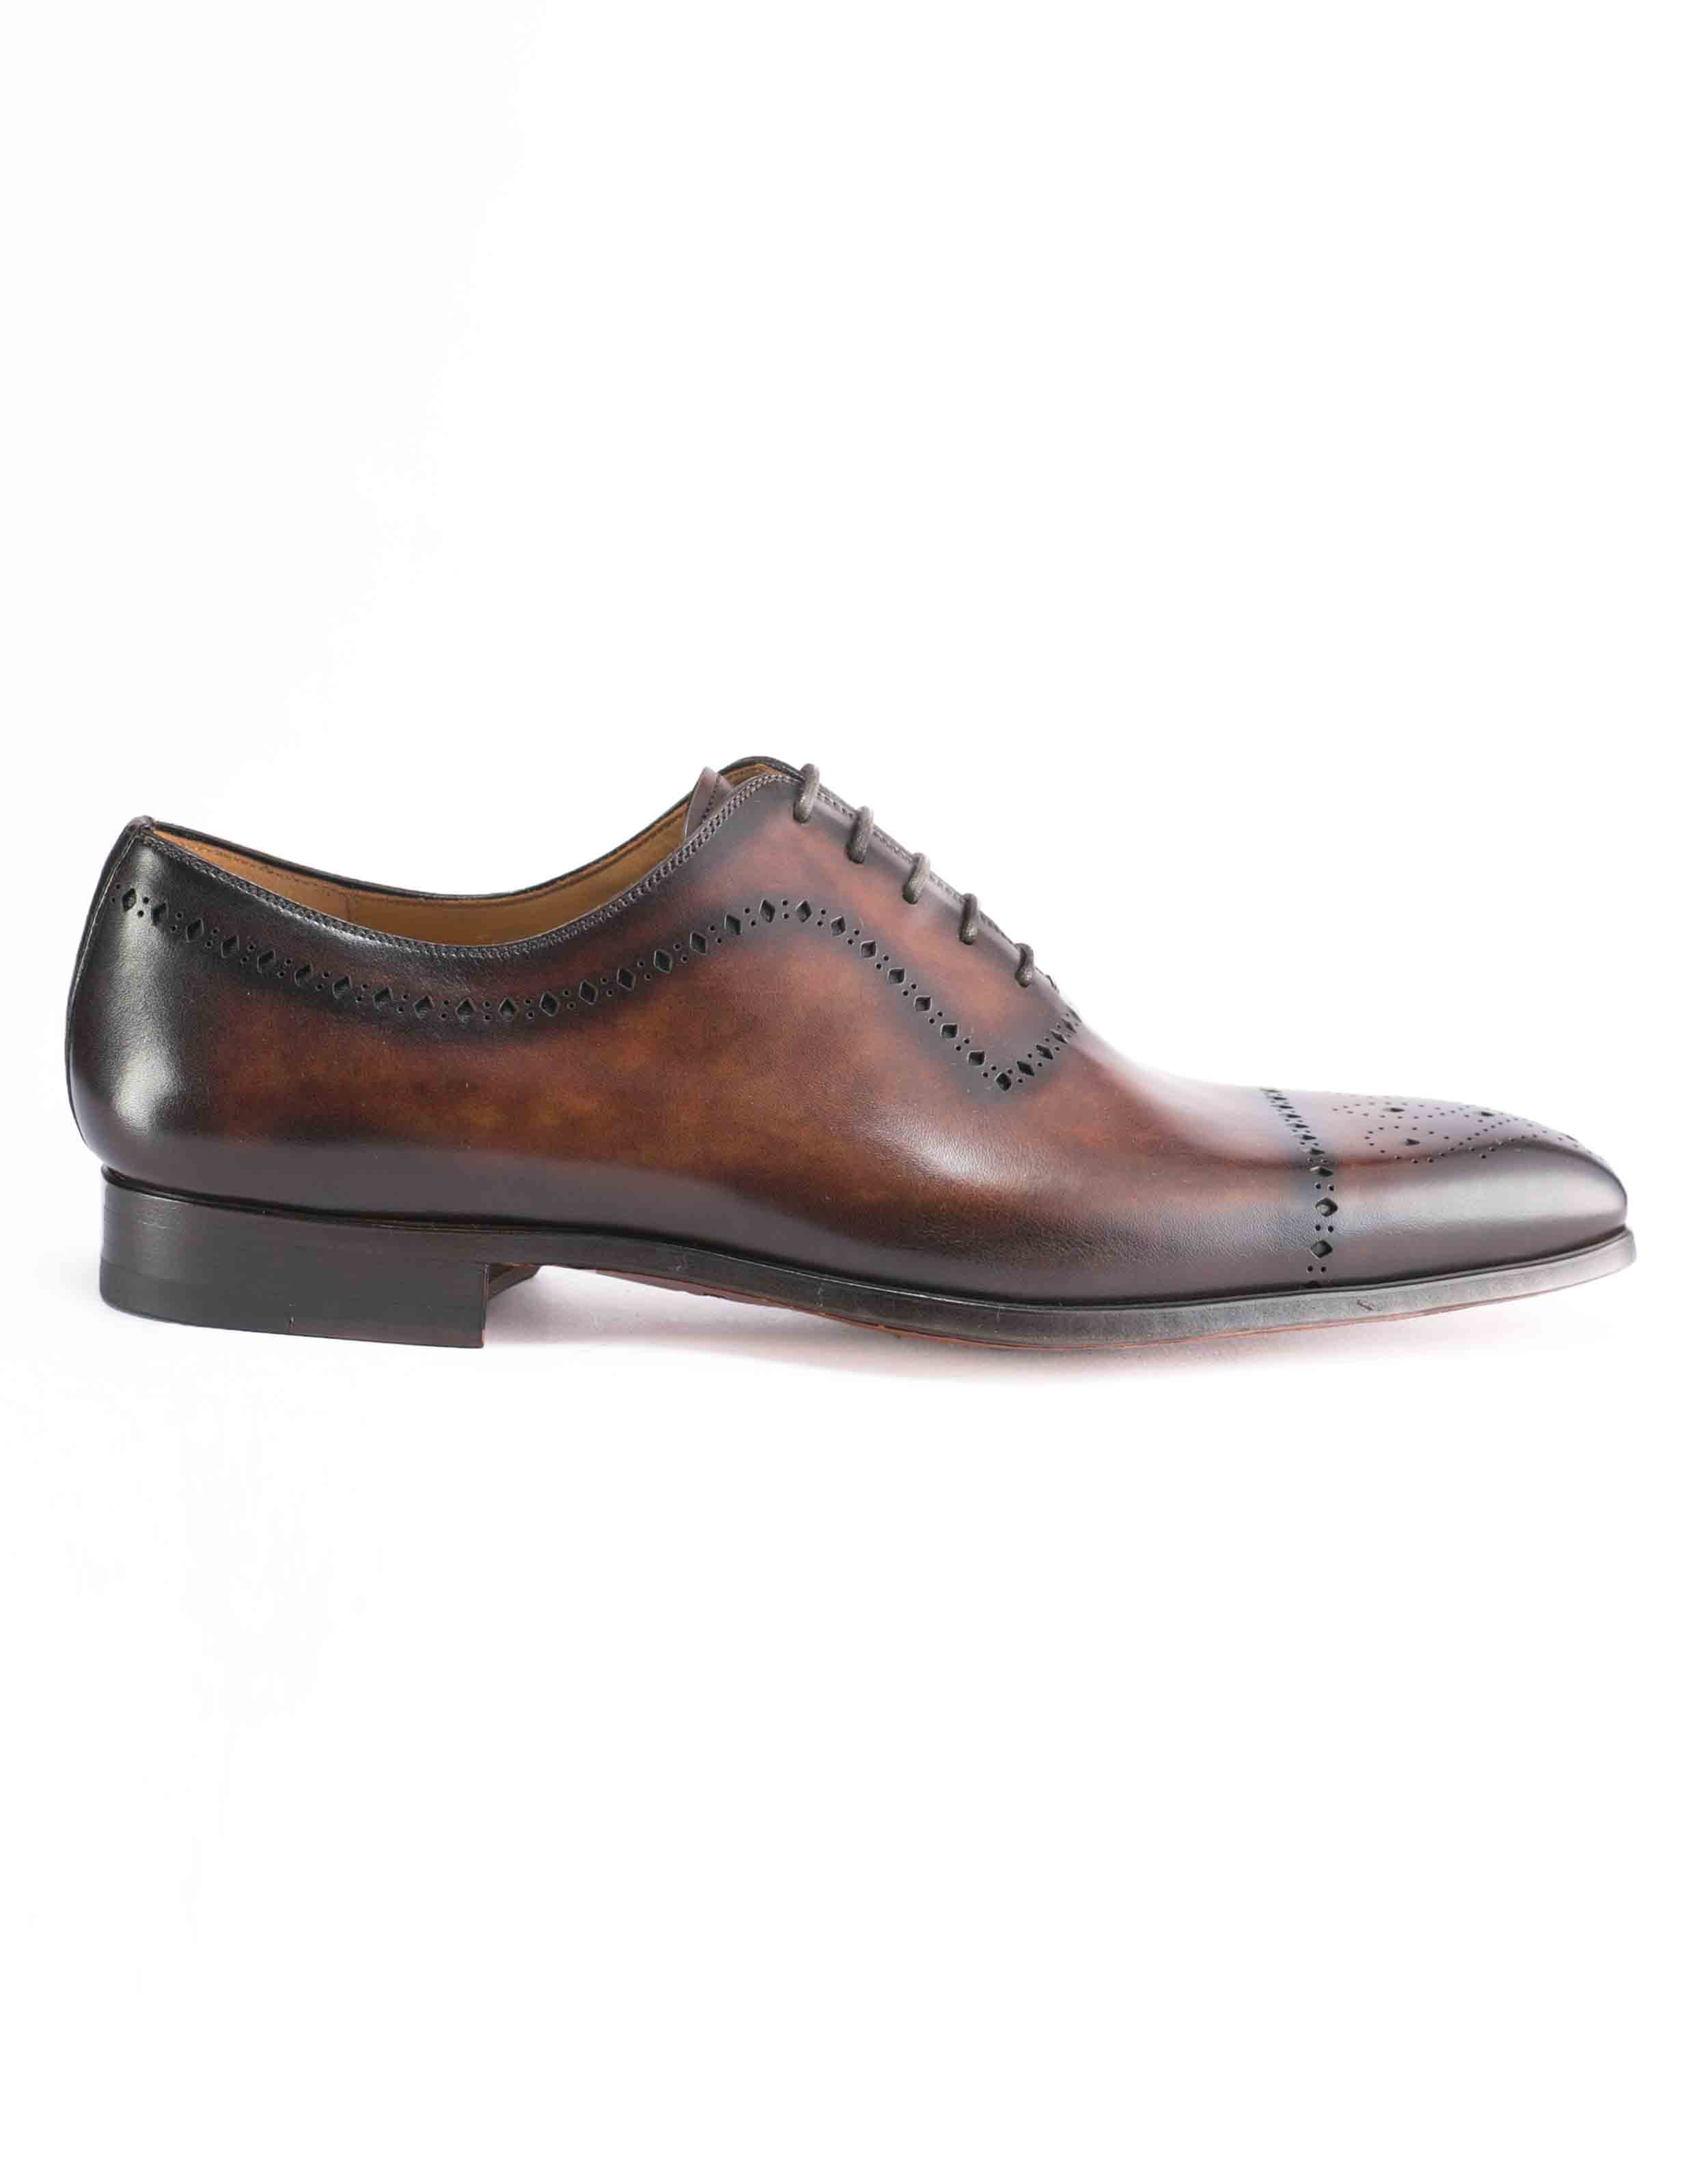 TABACO WHOLE CUT MEDALLION TOE OXFORDS1